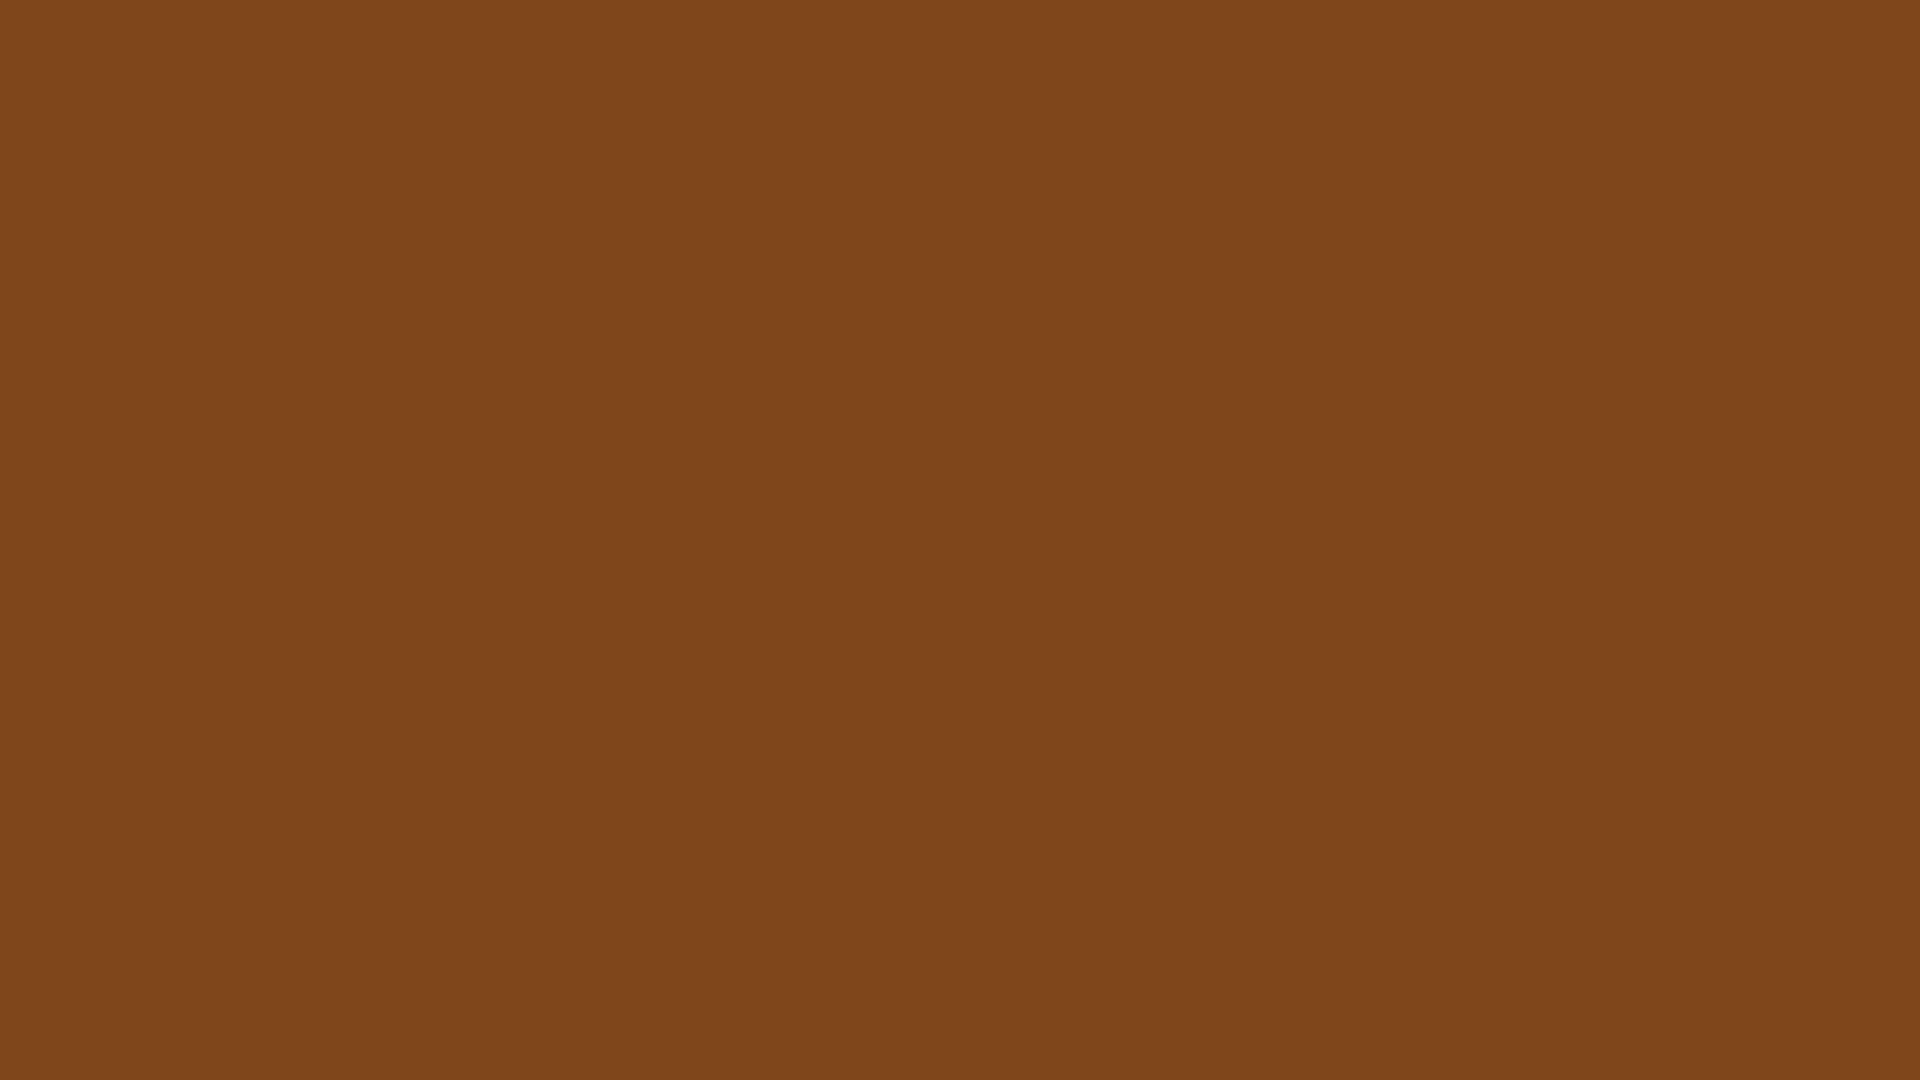 1920x1080 Russet Solid Color Background